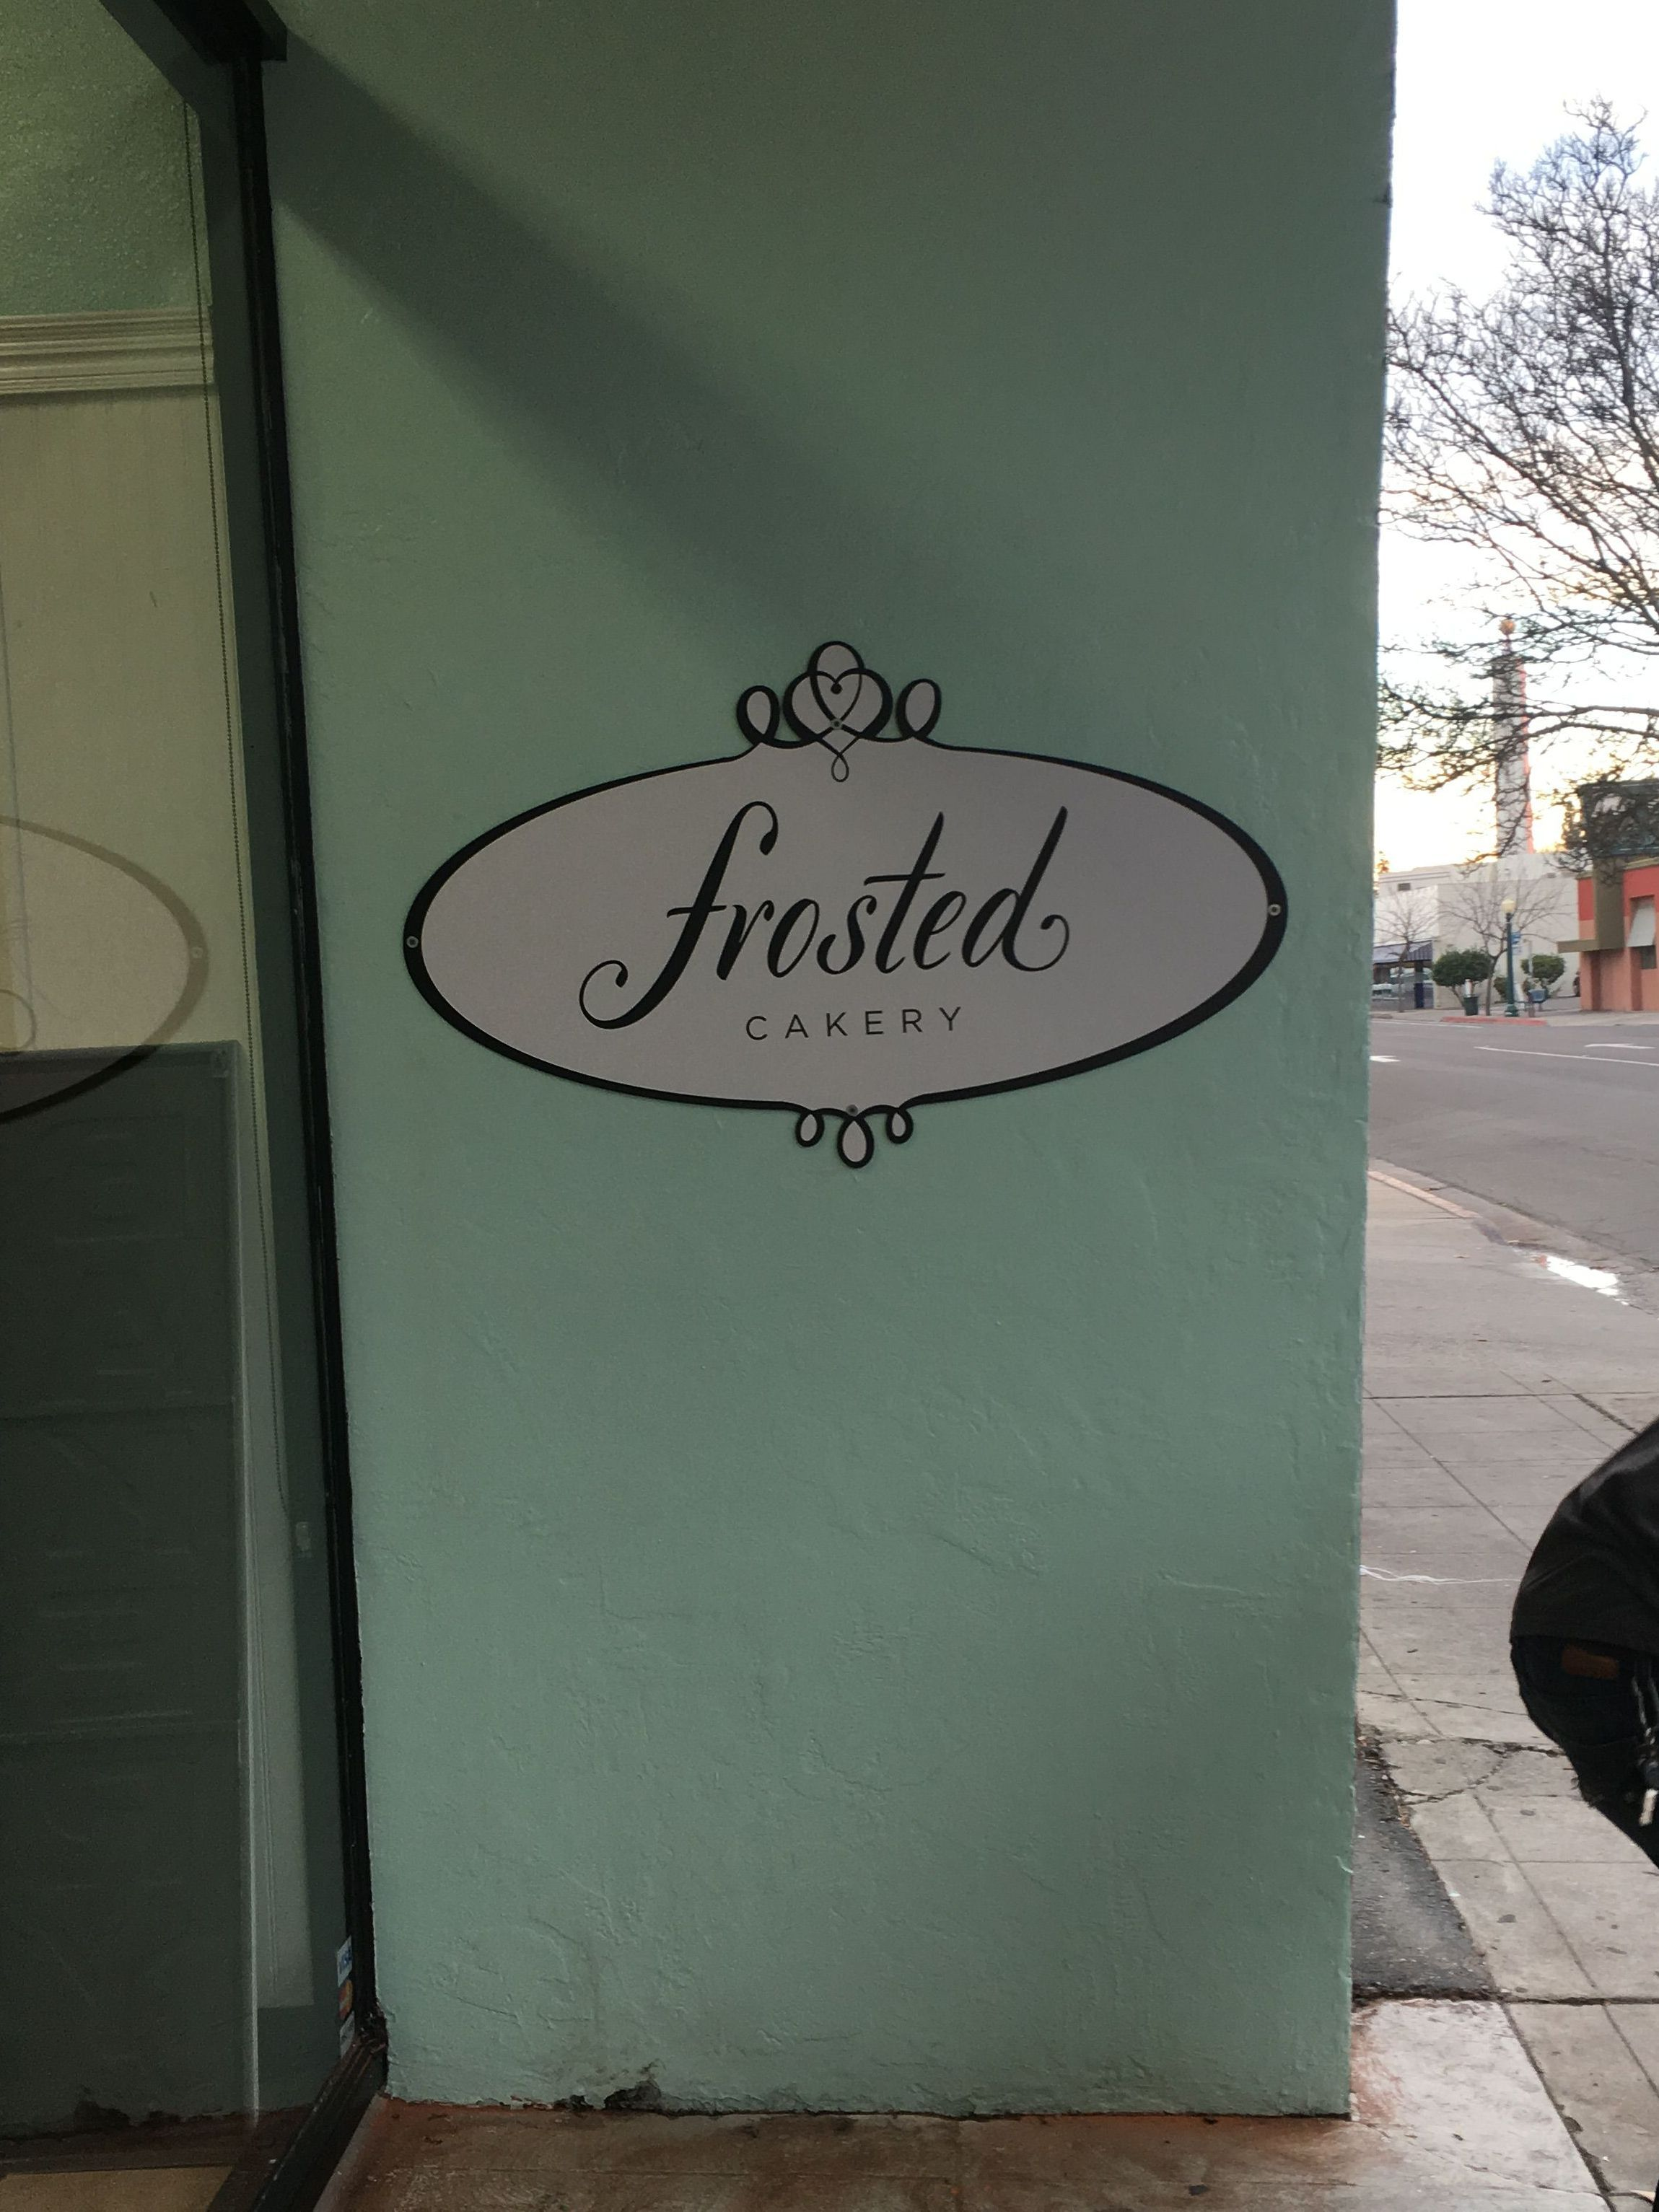 Frosted Cakery